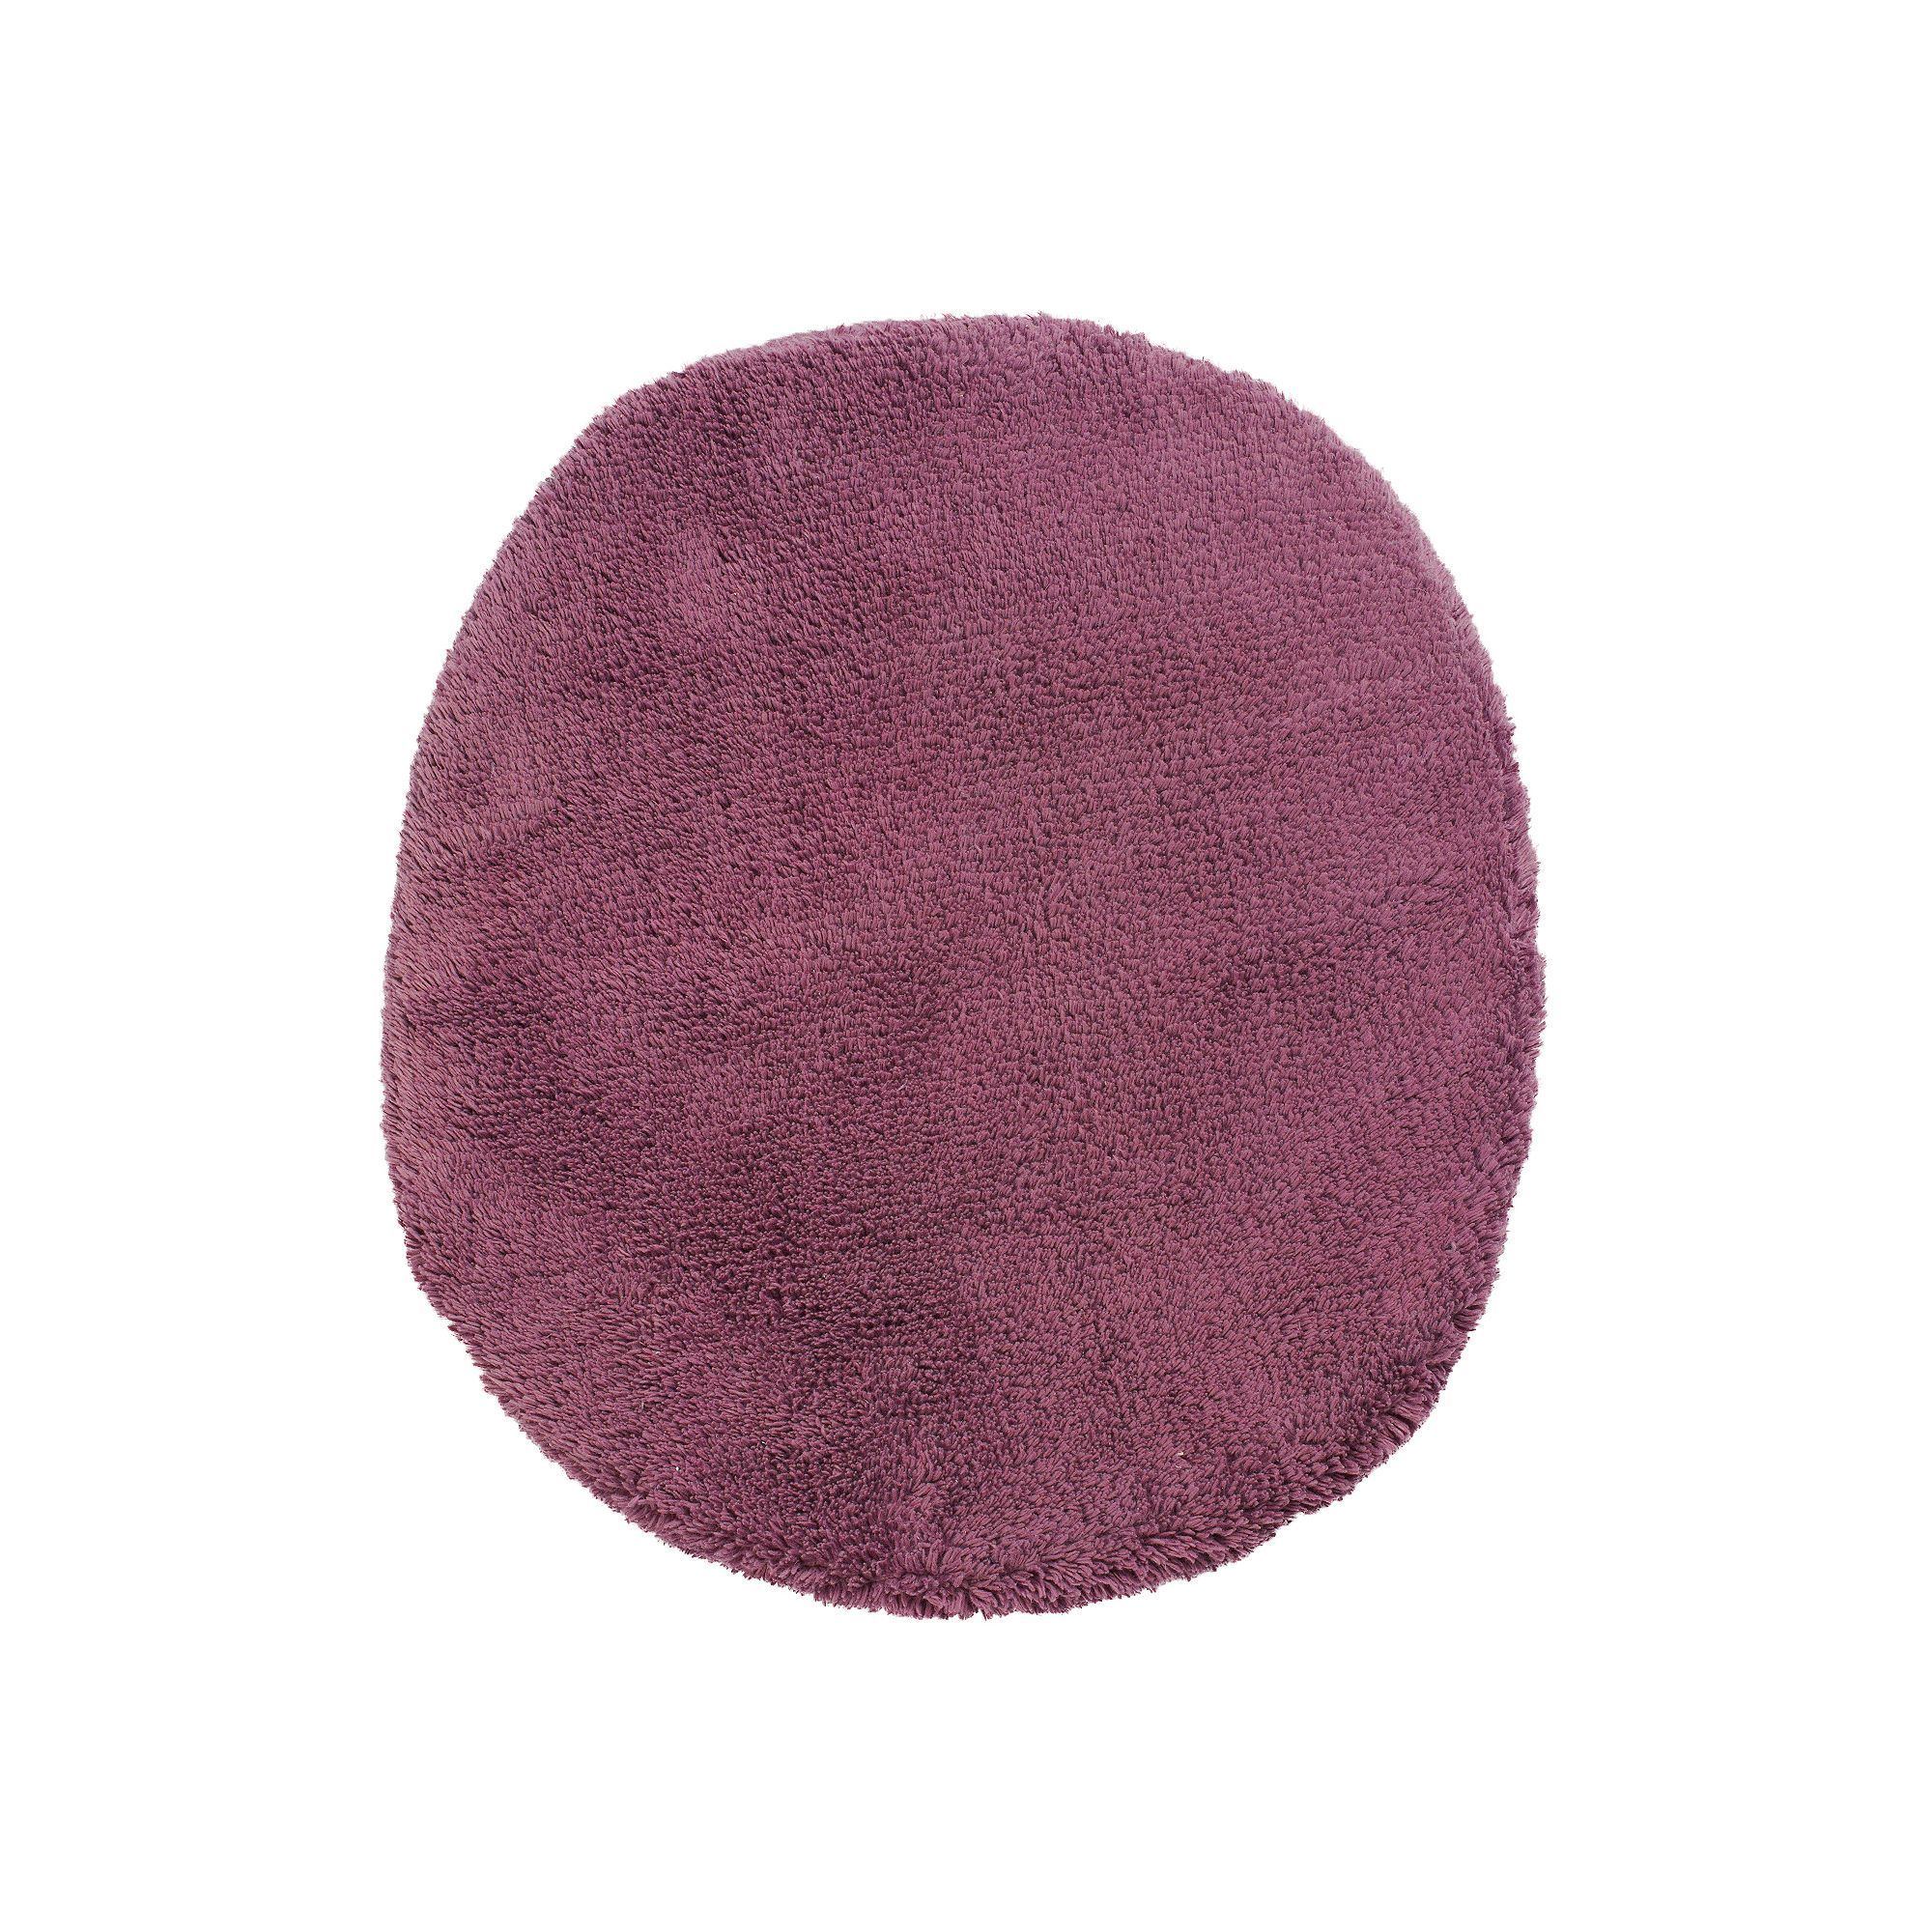 Simply Vera Vera Wang Simply Cotton Lid Cover, Purple